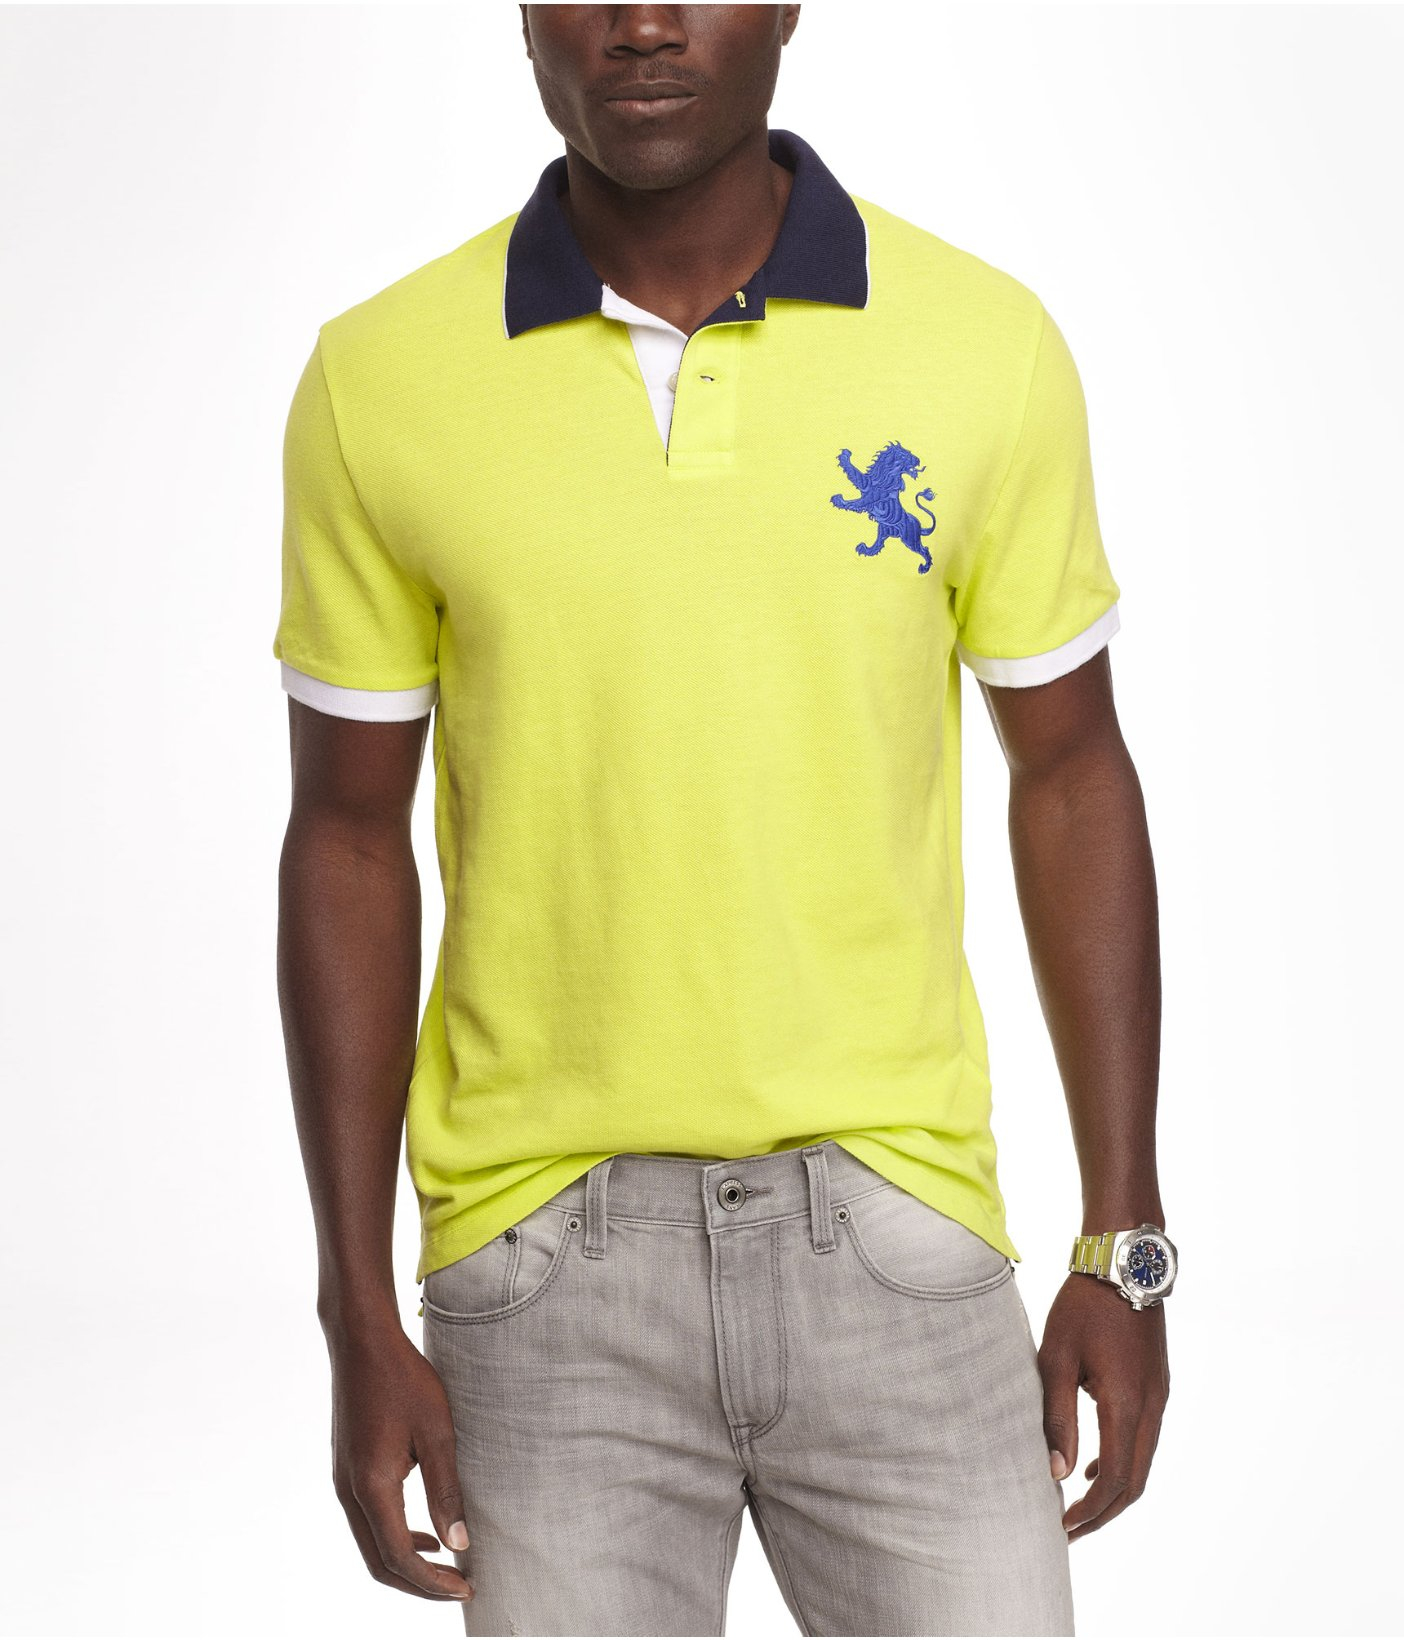 67824eba1 Lyst - Express Color Tipped Large Lion Polo in Yellow for Men